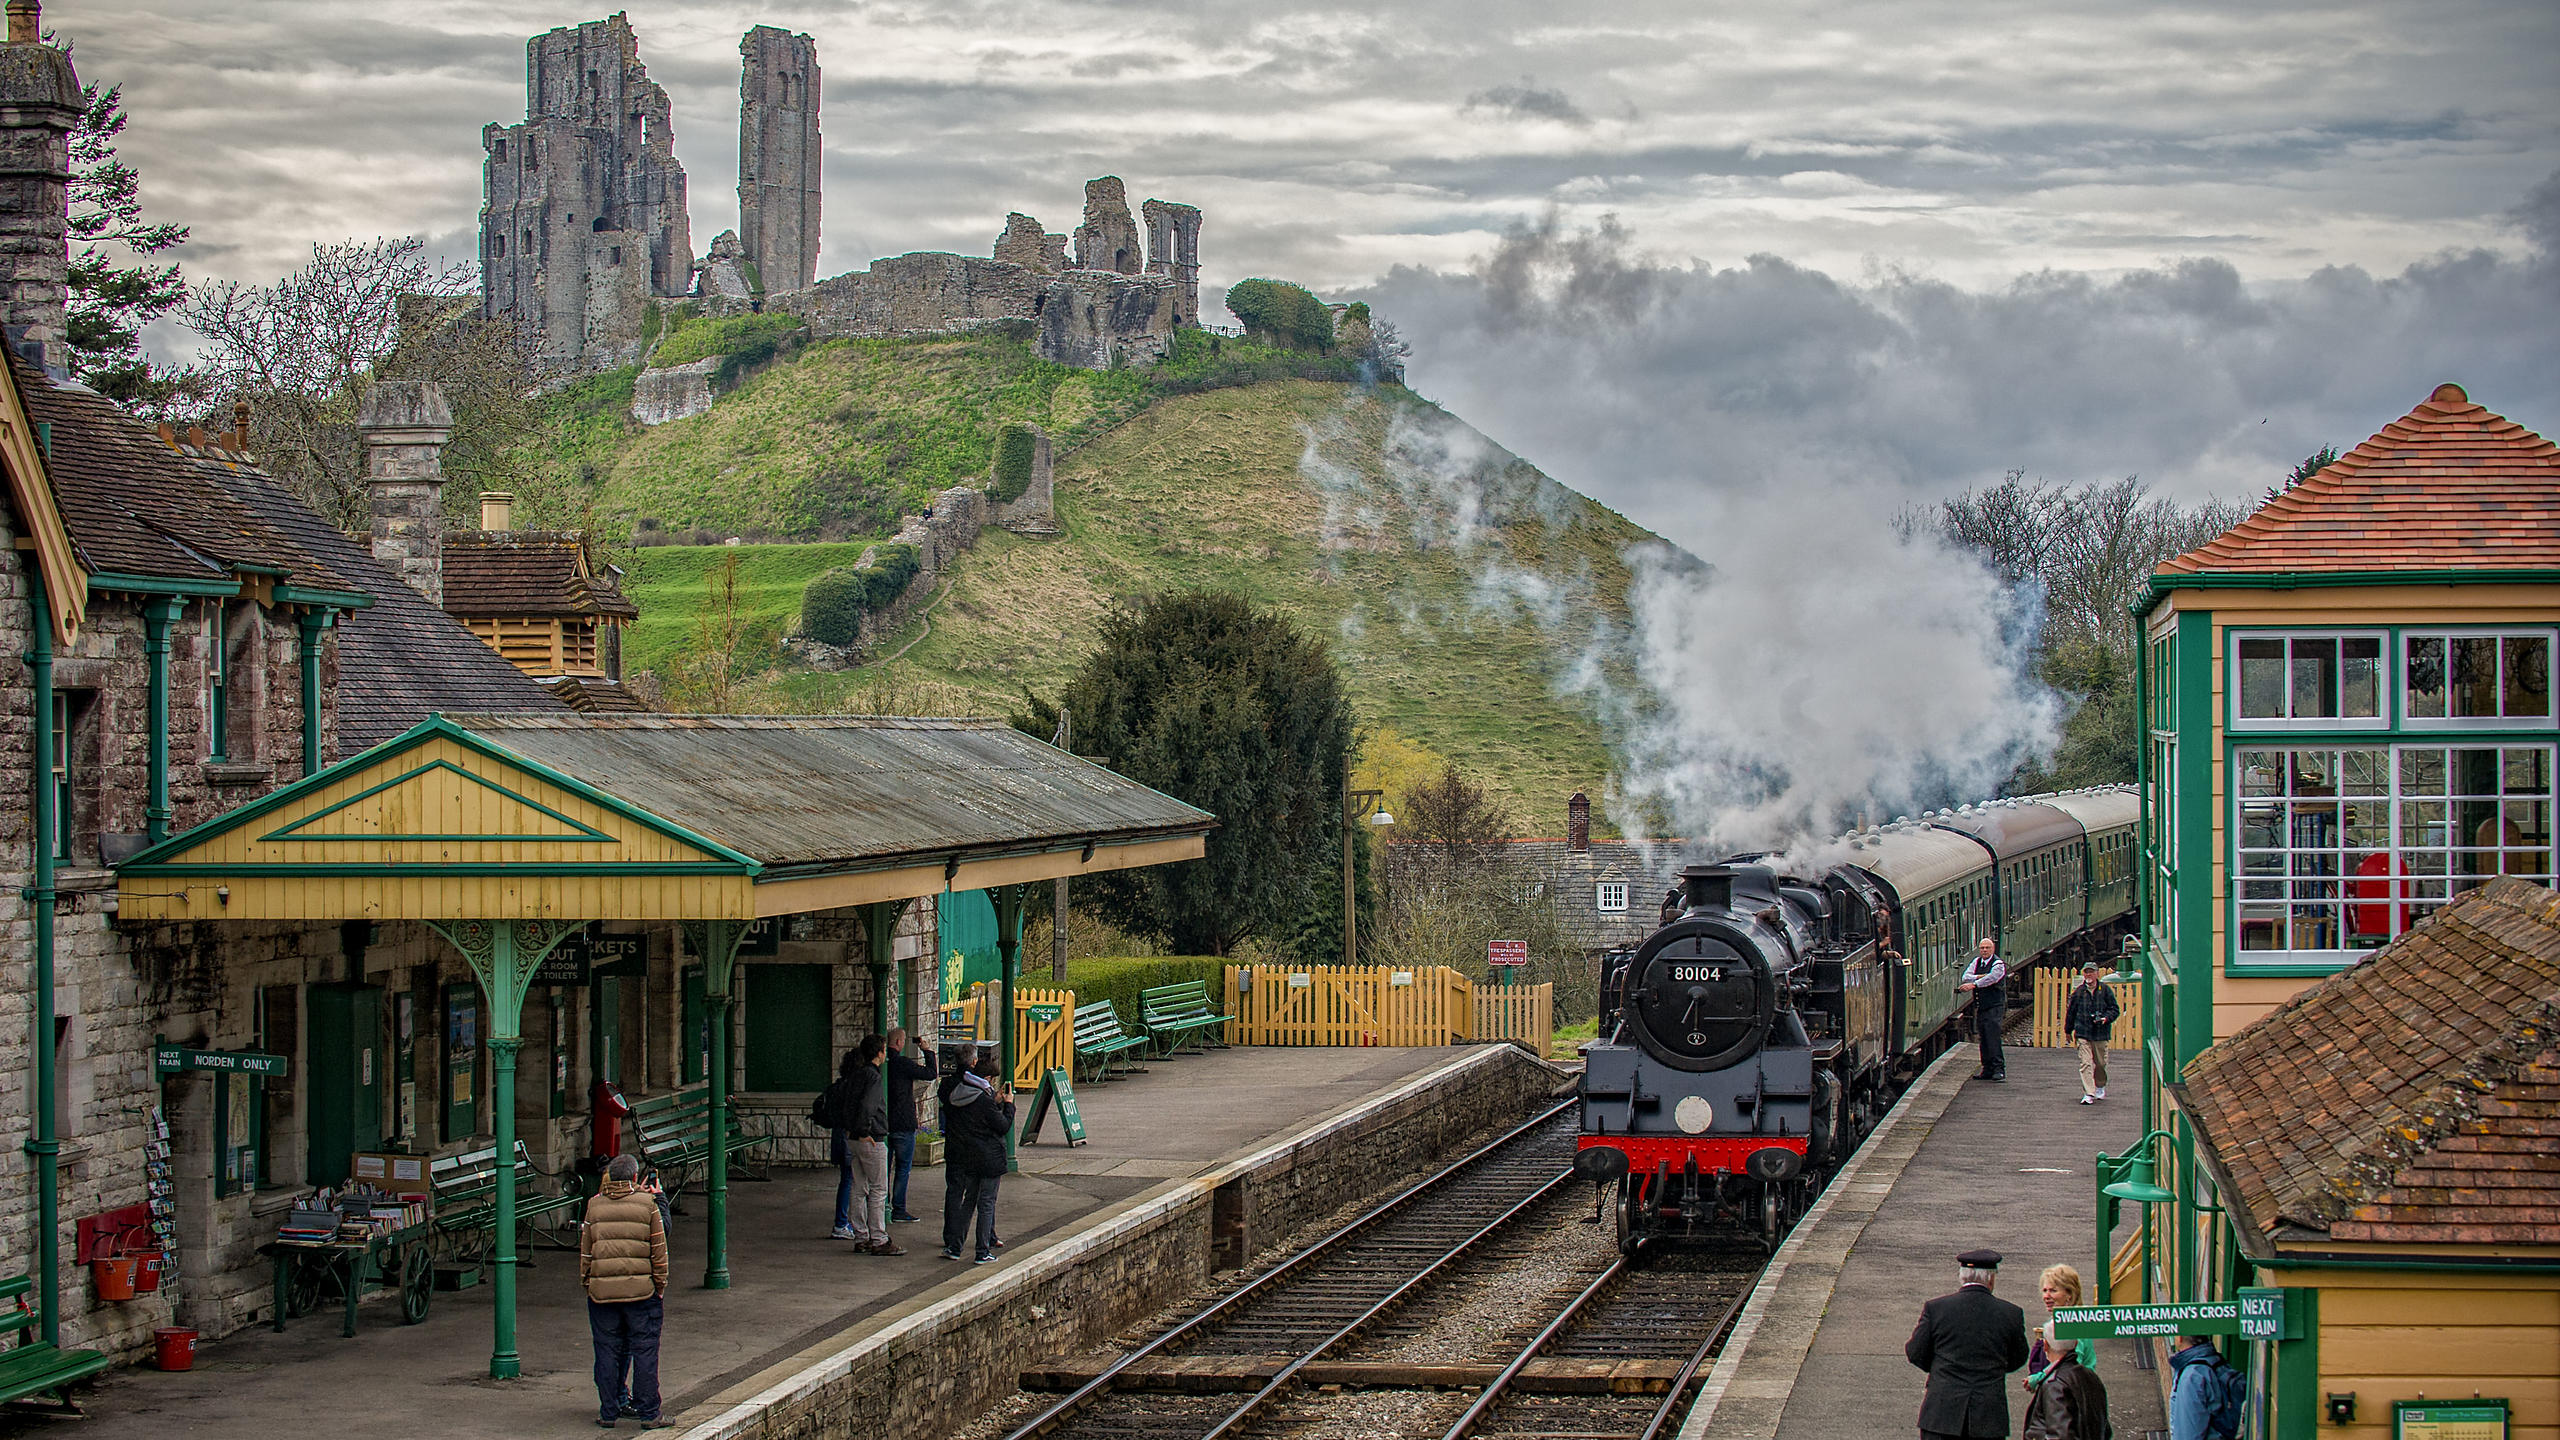 Swanage Railway Steam Train Pulling into Norden Station